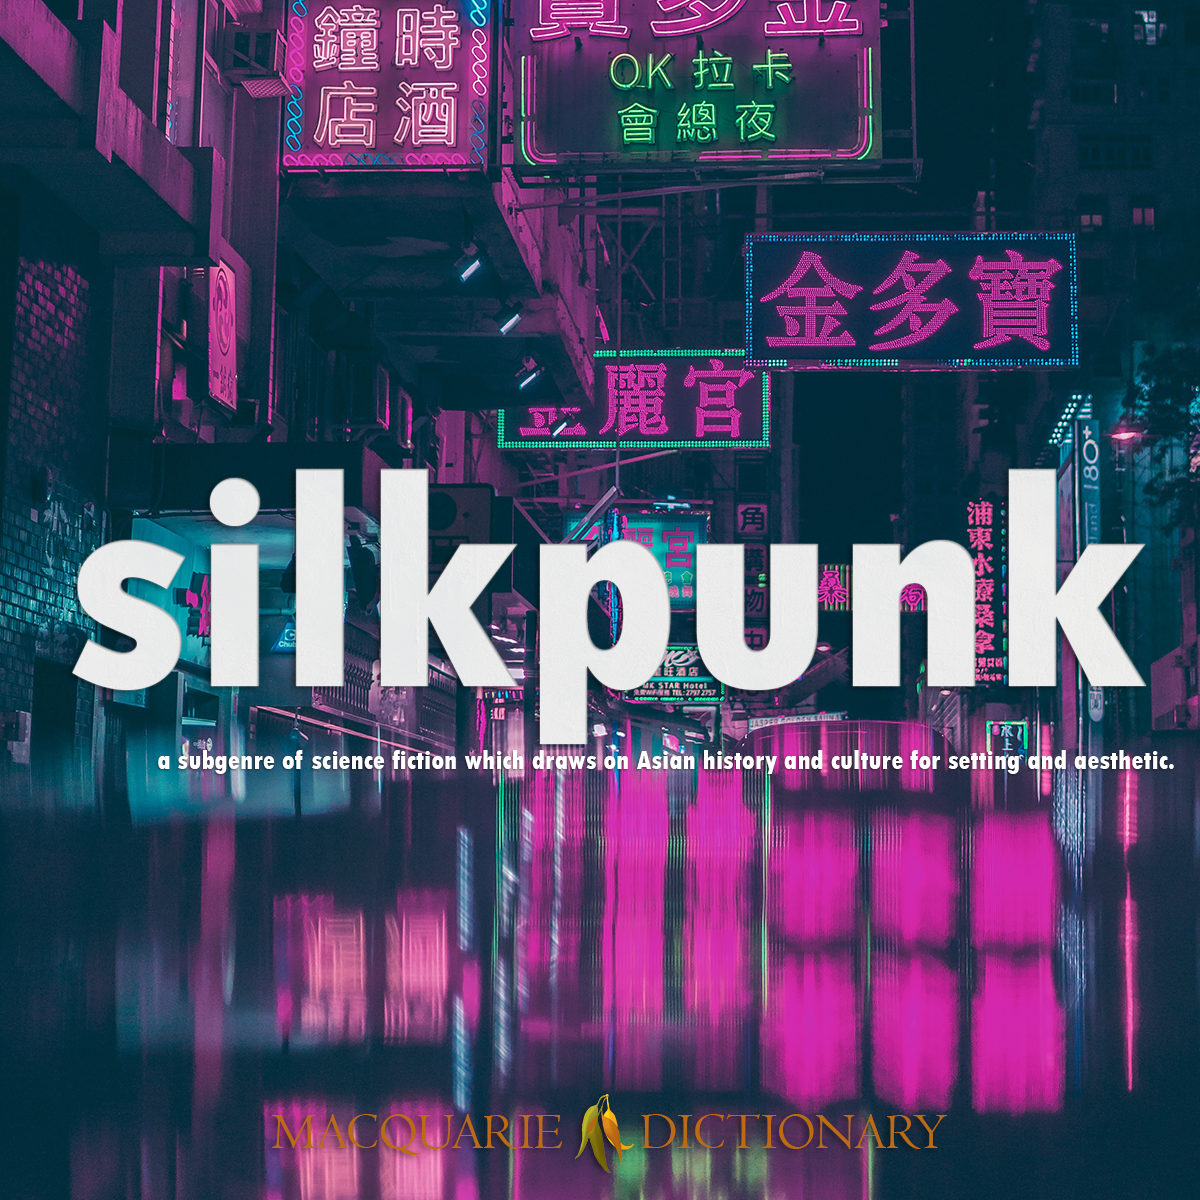 Image of Macquarie Dictionary Word of the Year silkpunk a subgenre of science fiction which draws on Asian history and culture for setting and aesthetic.